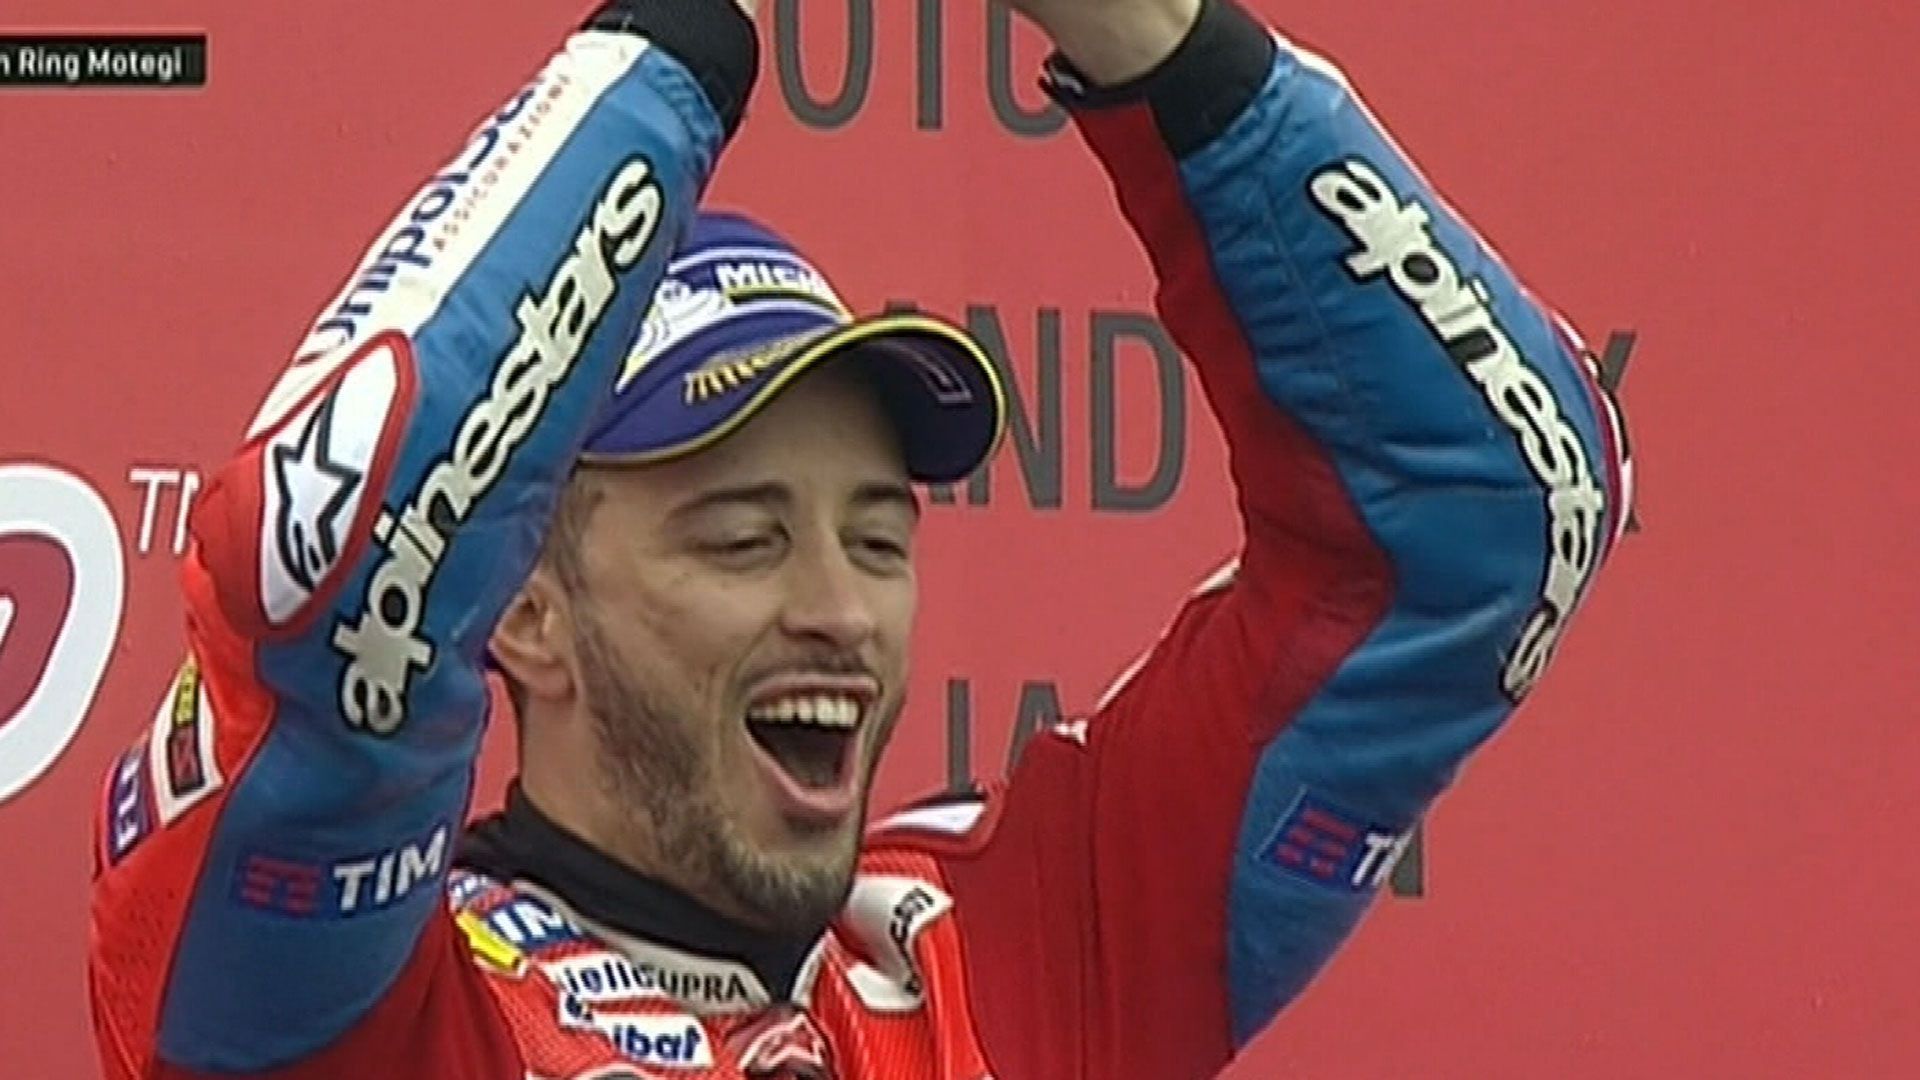 Thrilling finish to Japanese Moto GP